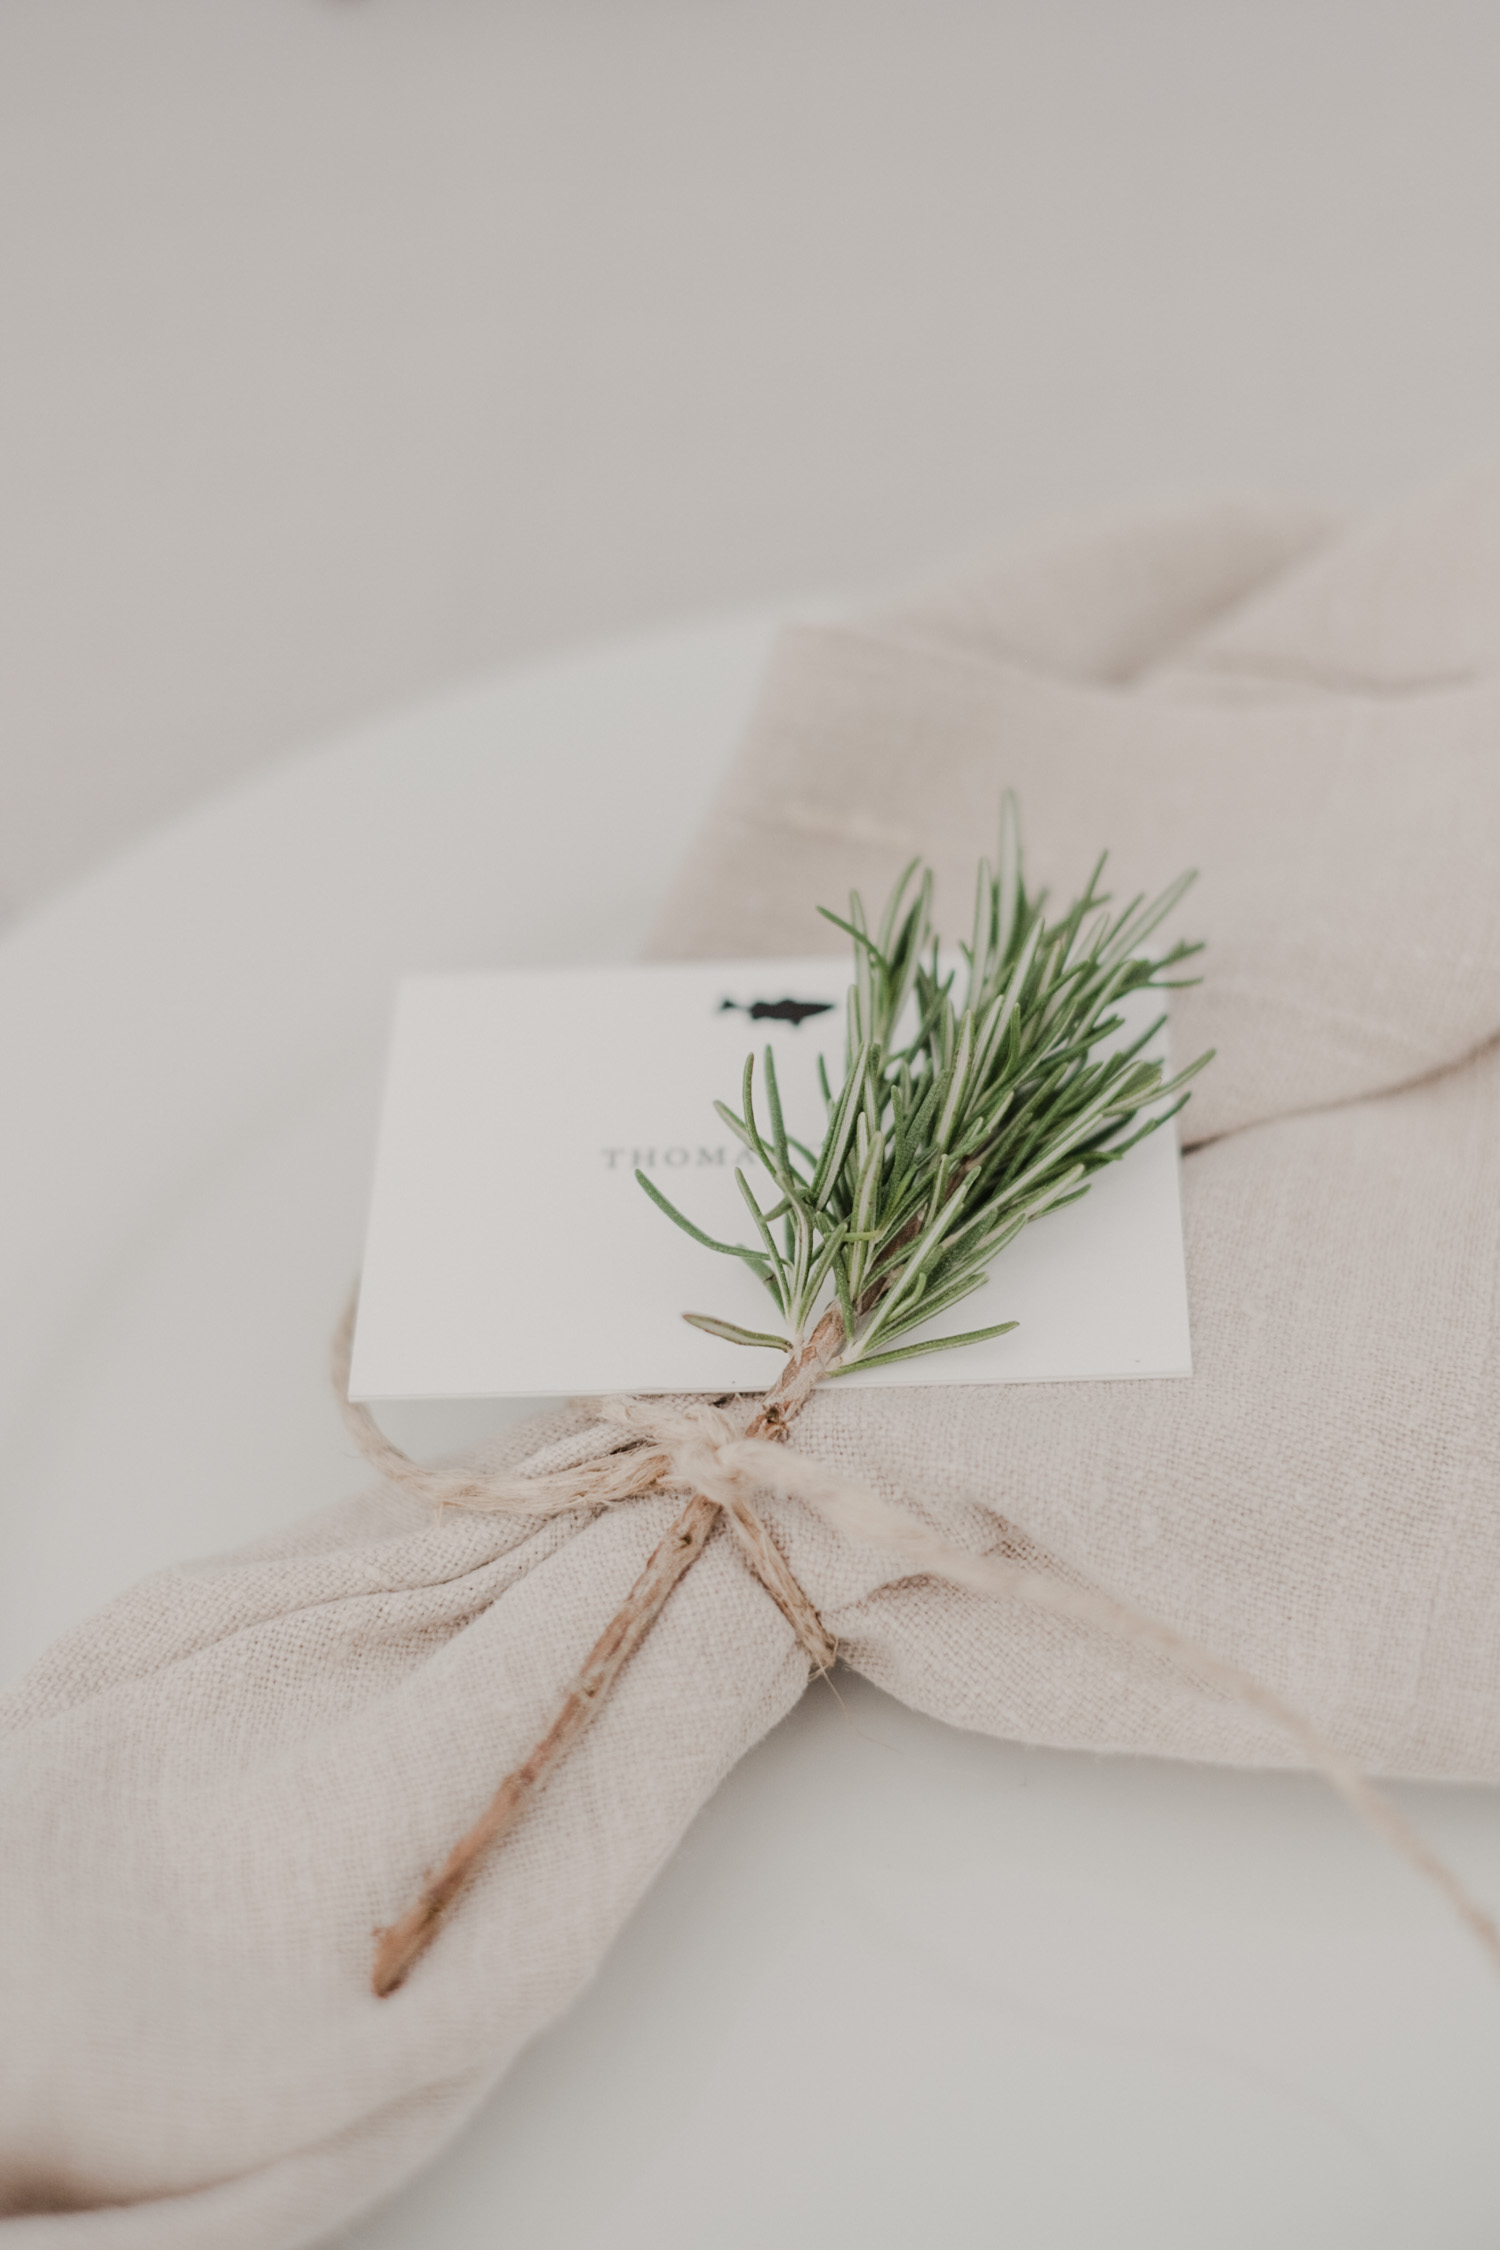 chesapeake bay maritime museum napkin and place card setting on plates